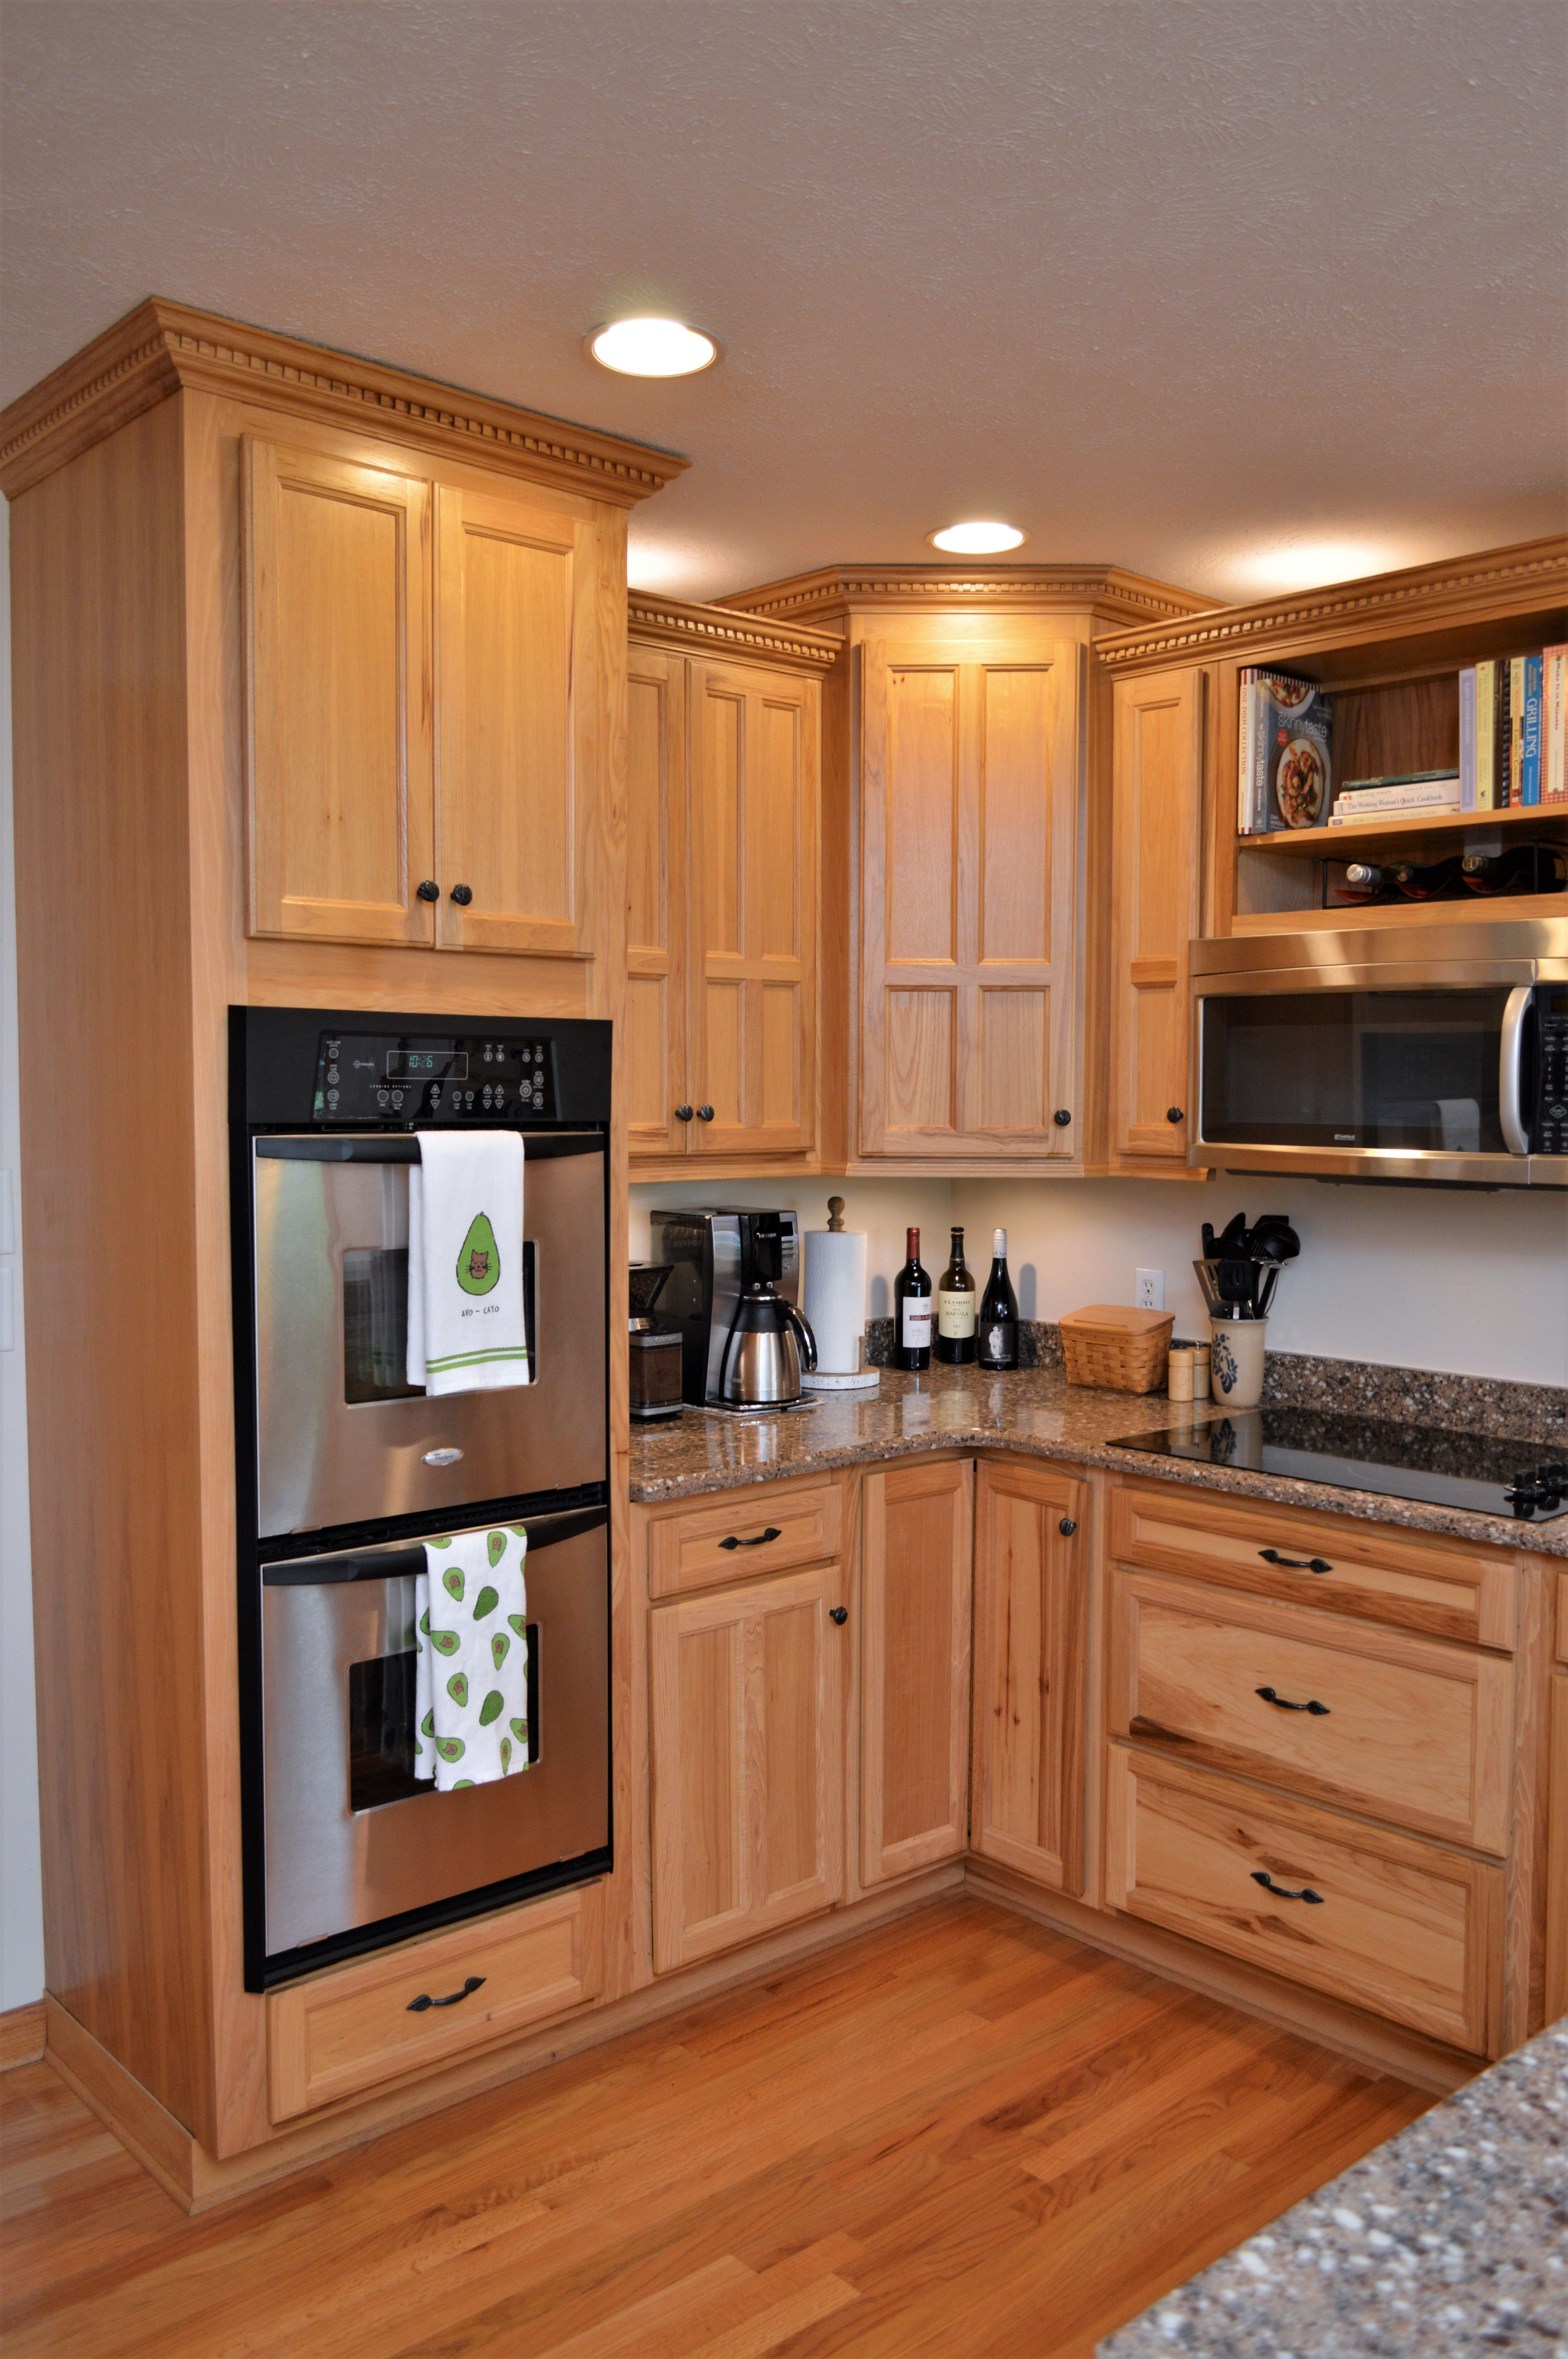 Haas Signature Collection Hickory Natural Finish Dresden Door Style Hickory Cabinets Cabinetry Kitchen Cabinets